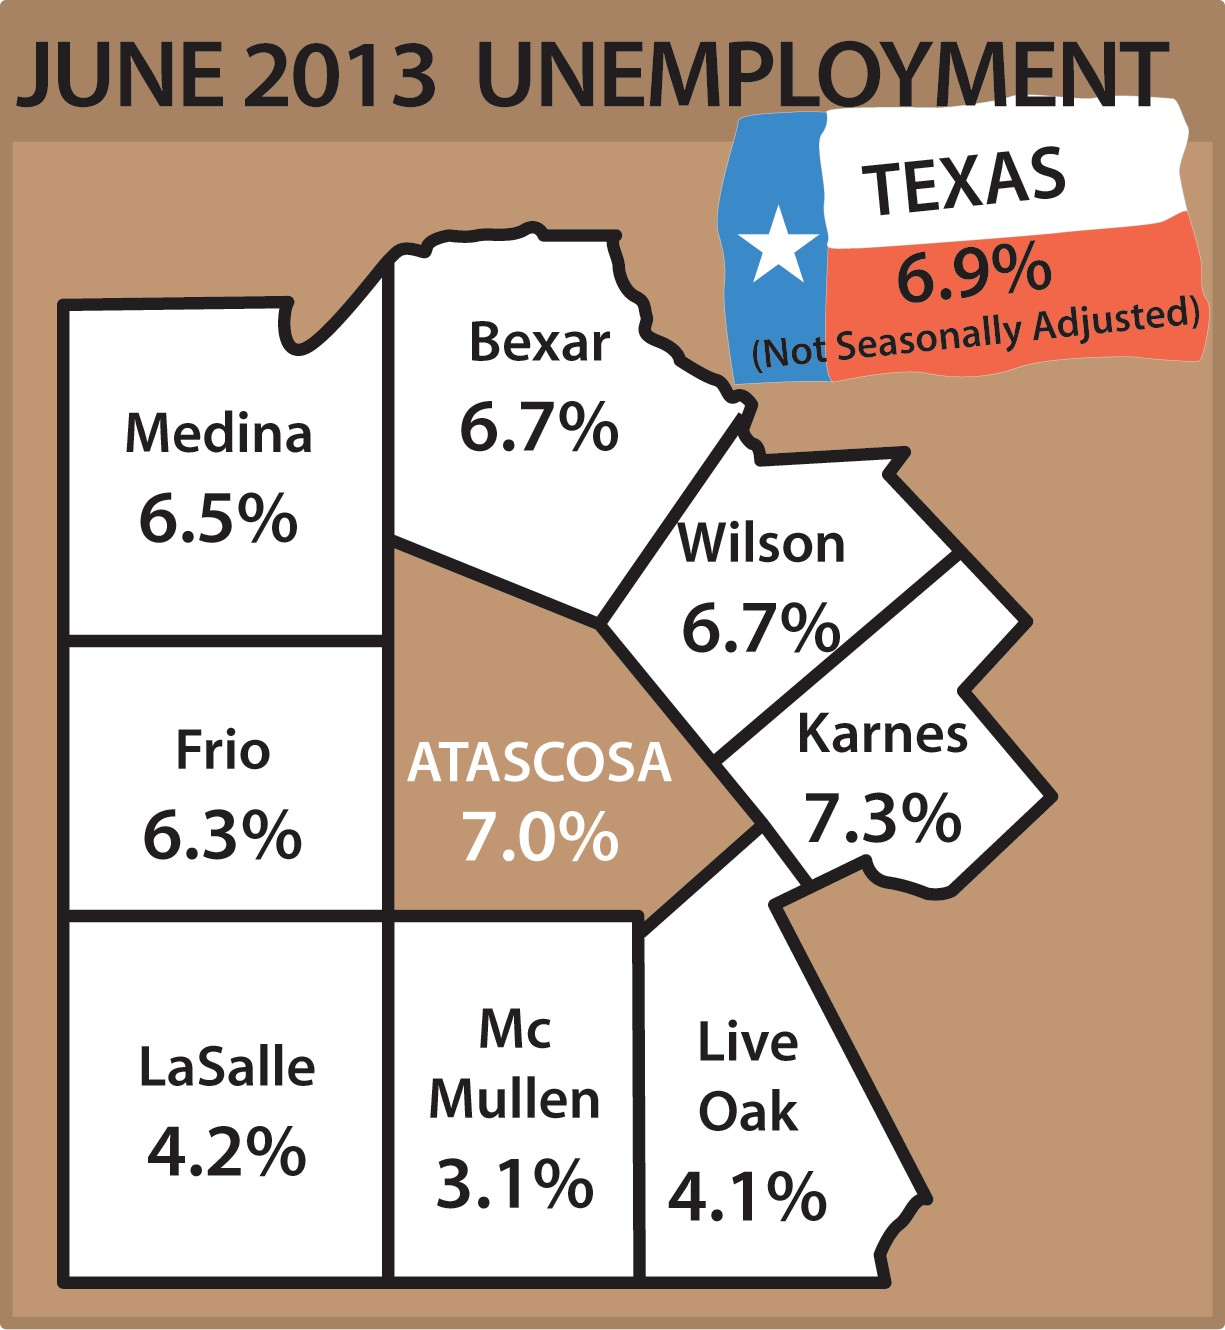 Unemployment in Atascosa County is at 7 percent for the month of June. That was after an increase from 6.3 percent in May. Most other area counties have had slight increases in unemployment rates. The rates for Texas in June were 6.9 percent (not adjusted; like the counties). Nationally, unemployment rates in June were 7.6 percent(adjusted).